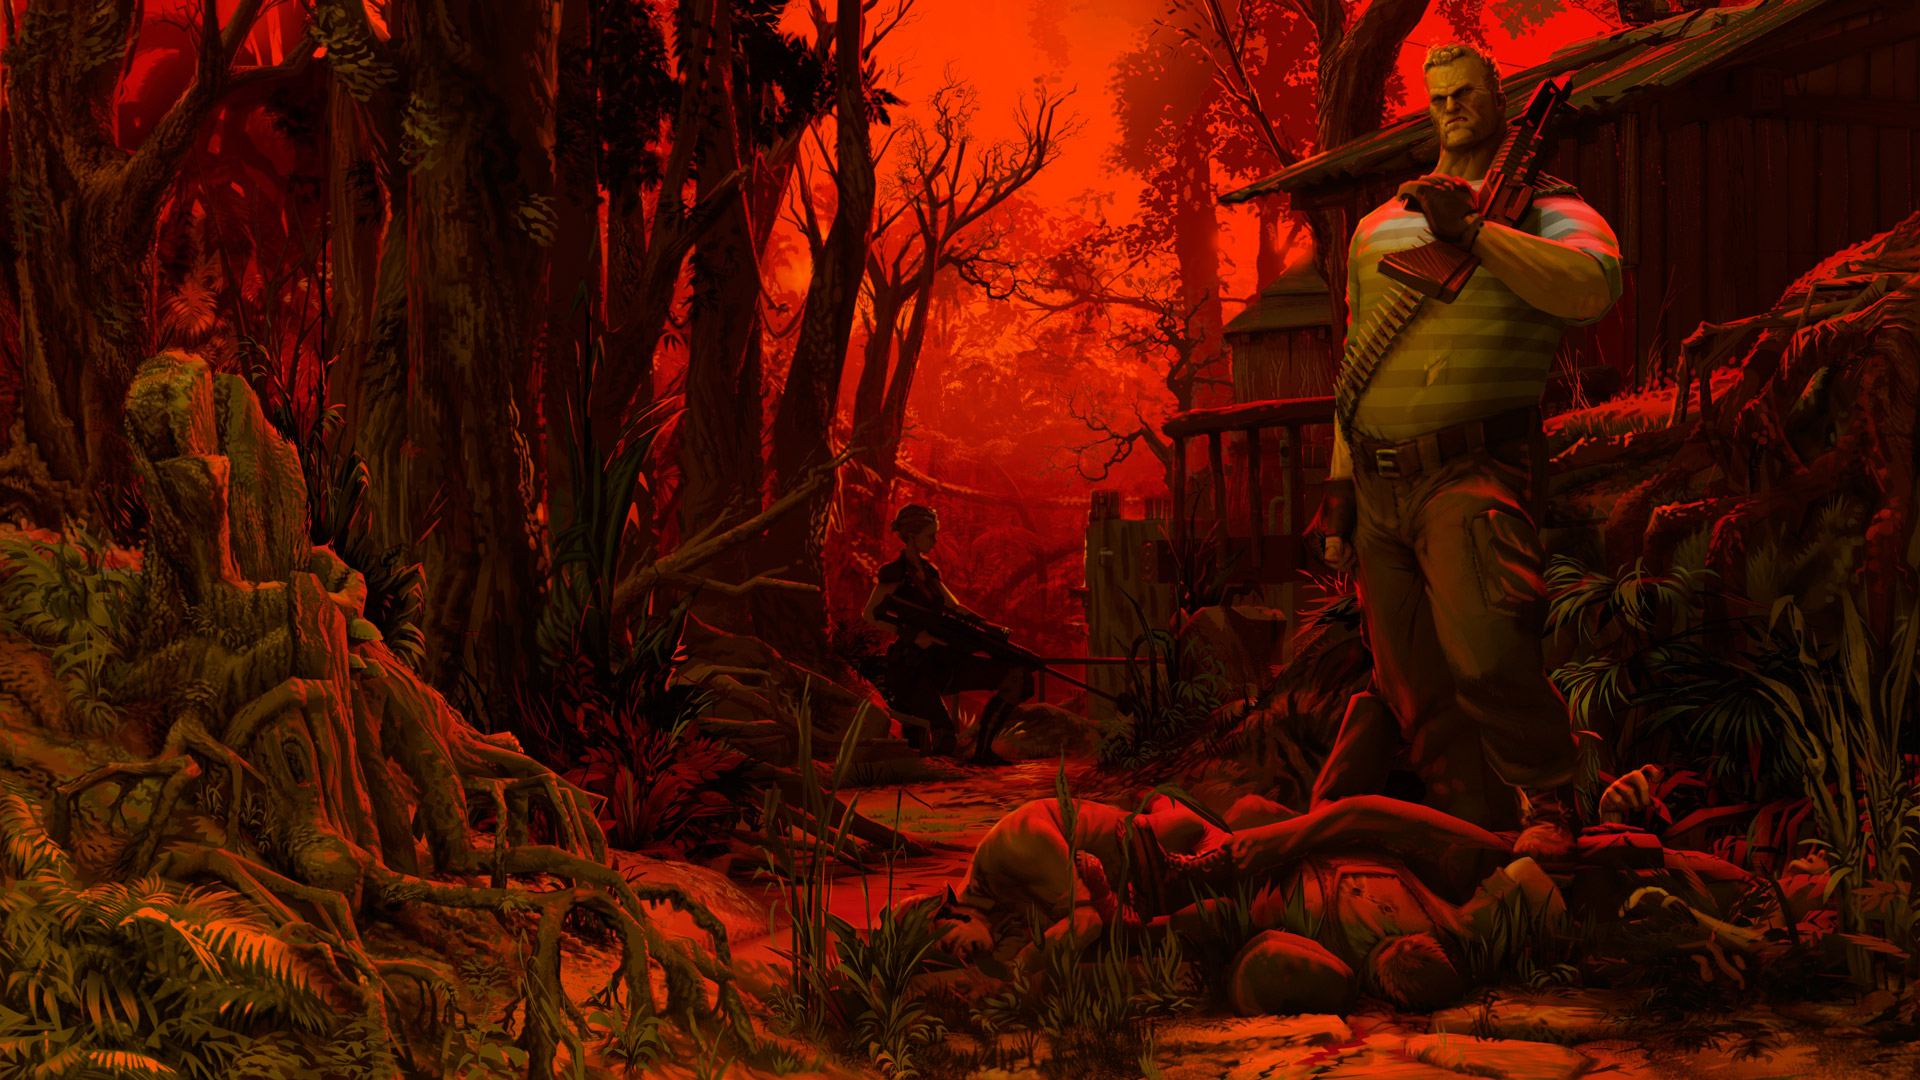 Free Jagged Alliance: Rage! Wallpaper in 1920x1080